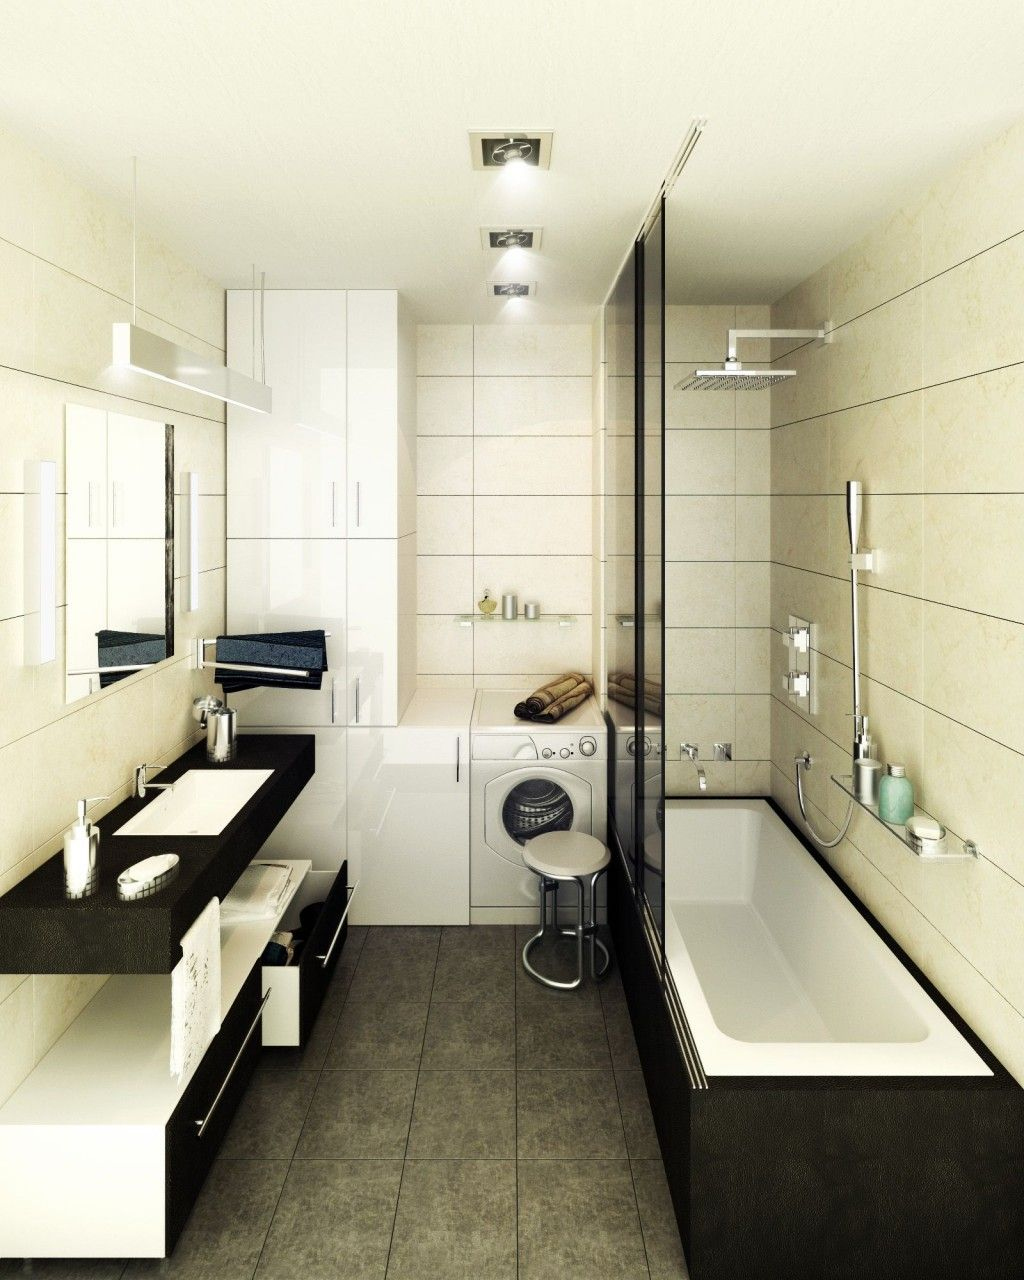 Uk Bathroom Design Fancy Narrow Bathroom Floor Cabinet And Small Narrow Bathroom